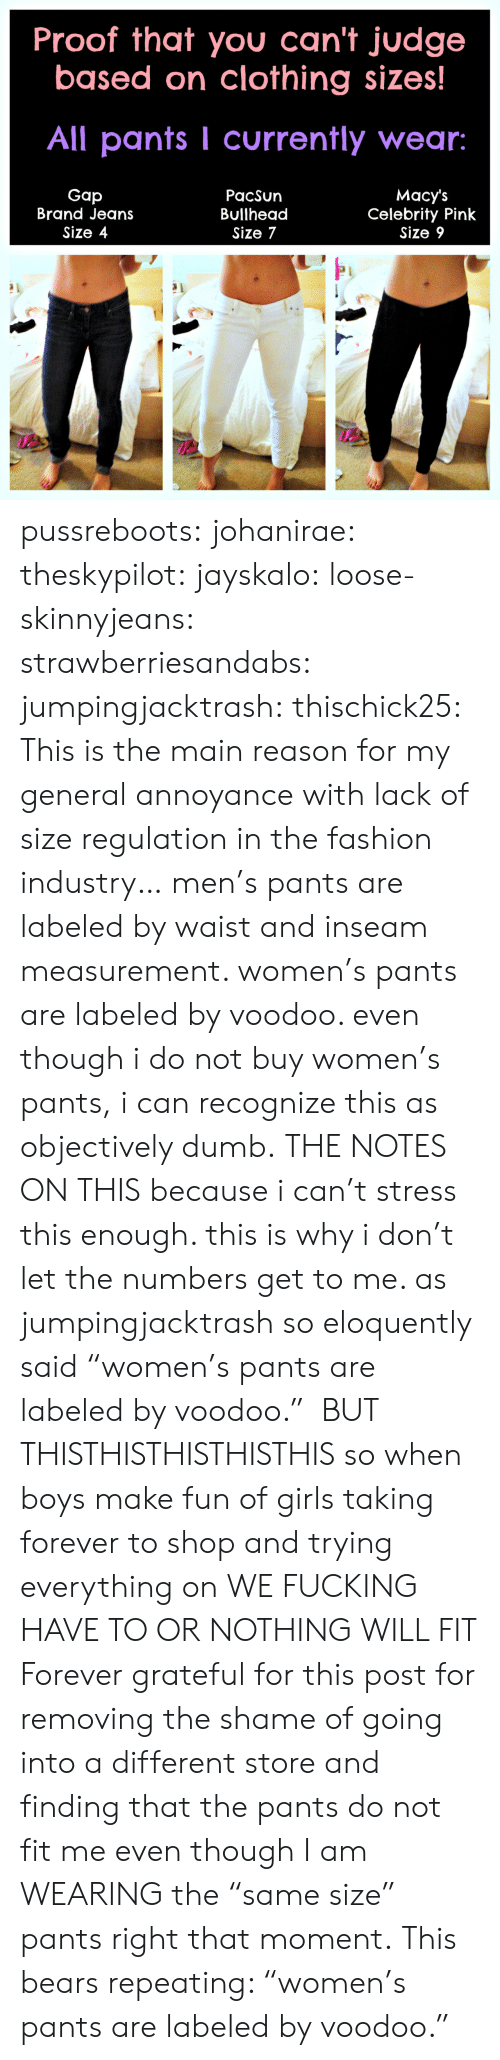 """annoyance: Proof that you can't judge  based on clothing sizes  All pants I currently wear:  Gap  Brand Jeans  Size 4  PacSun  Bullhead  Size 7  Macy's  Celebrity Pink  Size 9 pussreboots:  johanirae:  theskypilot:  jayskalo:  loose-skinnyjeans:  strawberriesandabs:  jumpingjacktrash:   thischick25:   This is the main reason for my general annoyance with lack of size regulation in the fashion industry…   men's pants are labeled by waist and inseam measurement. women's pants are labeled by voodoo. even though i do not buy women's pants, i can recognize this as objectively dumb.   THE NOTES ON THIS   because i can't stress this enough. this is why i don't let the numbers get to me. as jumpingjacktrash so eloquently said """"women's pants are labeled by voodoo.""""  BUT THISTHISTHISTHISTHIS  so when boys make fun of girls taking forever to shop and trying everything on WE FUCKING HAVE TO OR NOTHING WILL FIT  Forever grateful for this post for removing the shame of going into a different store and finding that the pants do not fit me even though I am WEARING the """"same size"""" pants right that moment.  This bears repeating: """"women's pants are labeled by voodoo."""""""